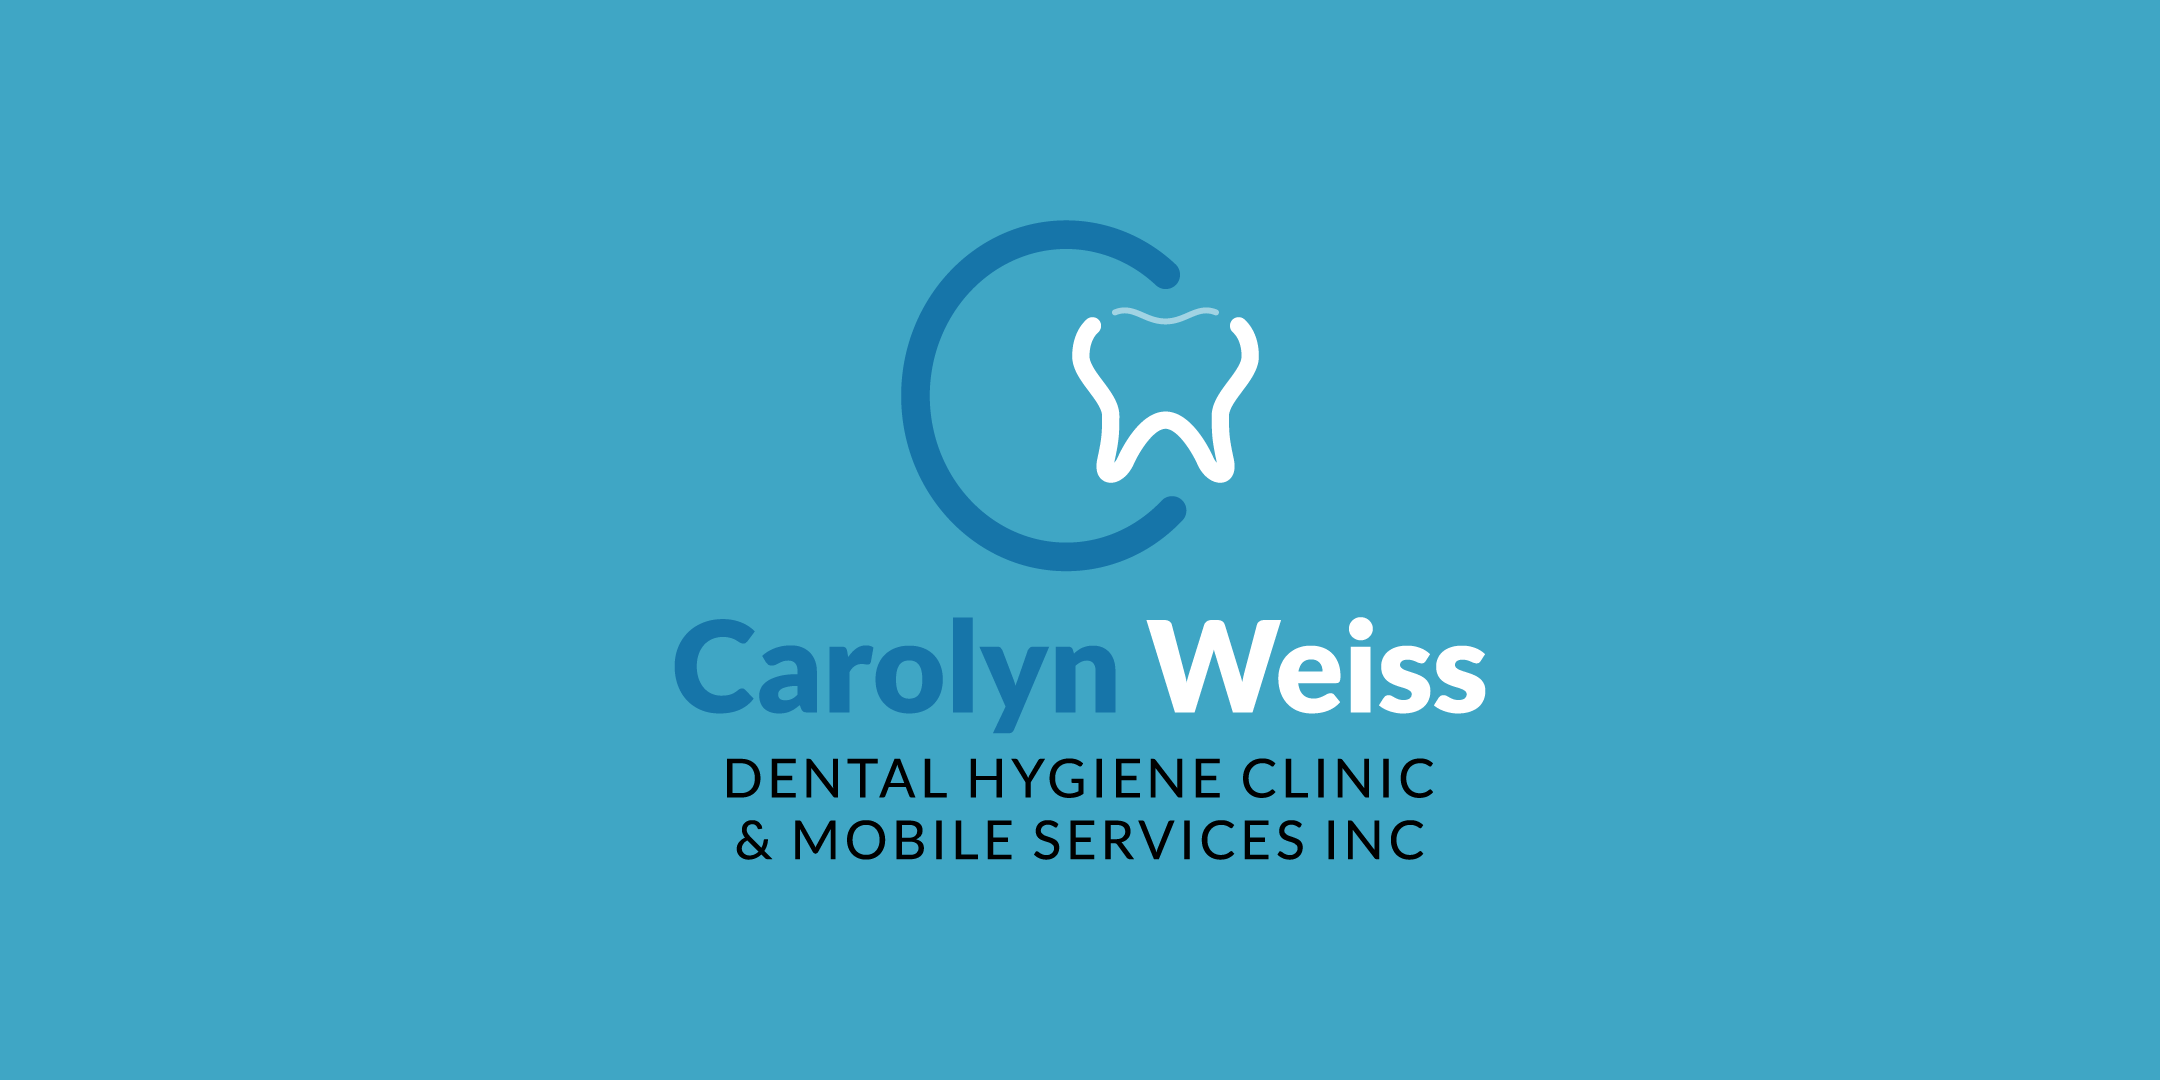 Carolyn Weiss stacked logo